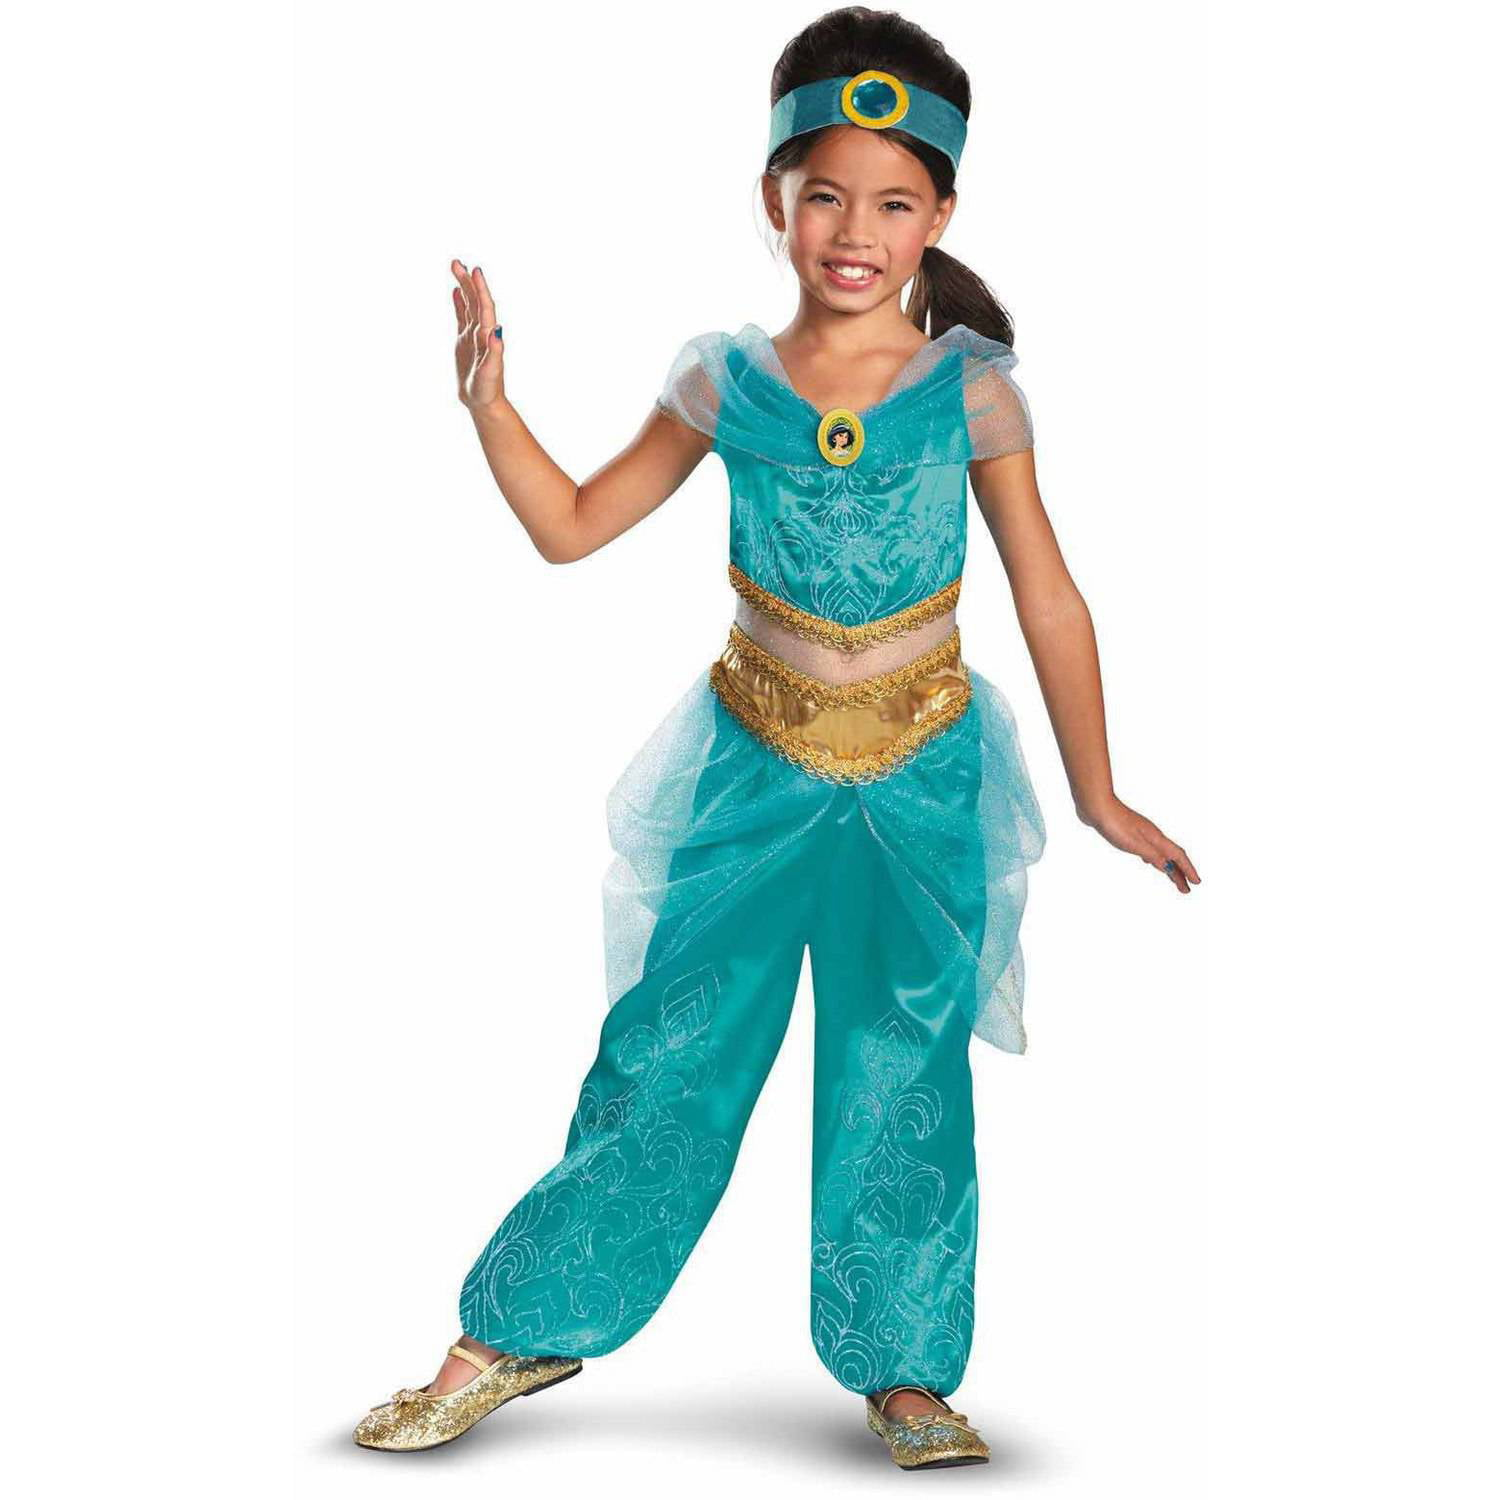 Disney Jasmine Deluxe Sparkle Girlu0027s Child Halloween Costume - Walmart.com  sc 1 st  Walmart & Disney Jasmine Deluxe Sparkle Girlu0027s Child Halloween Costume ...